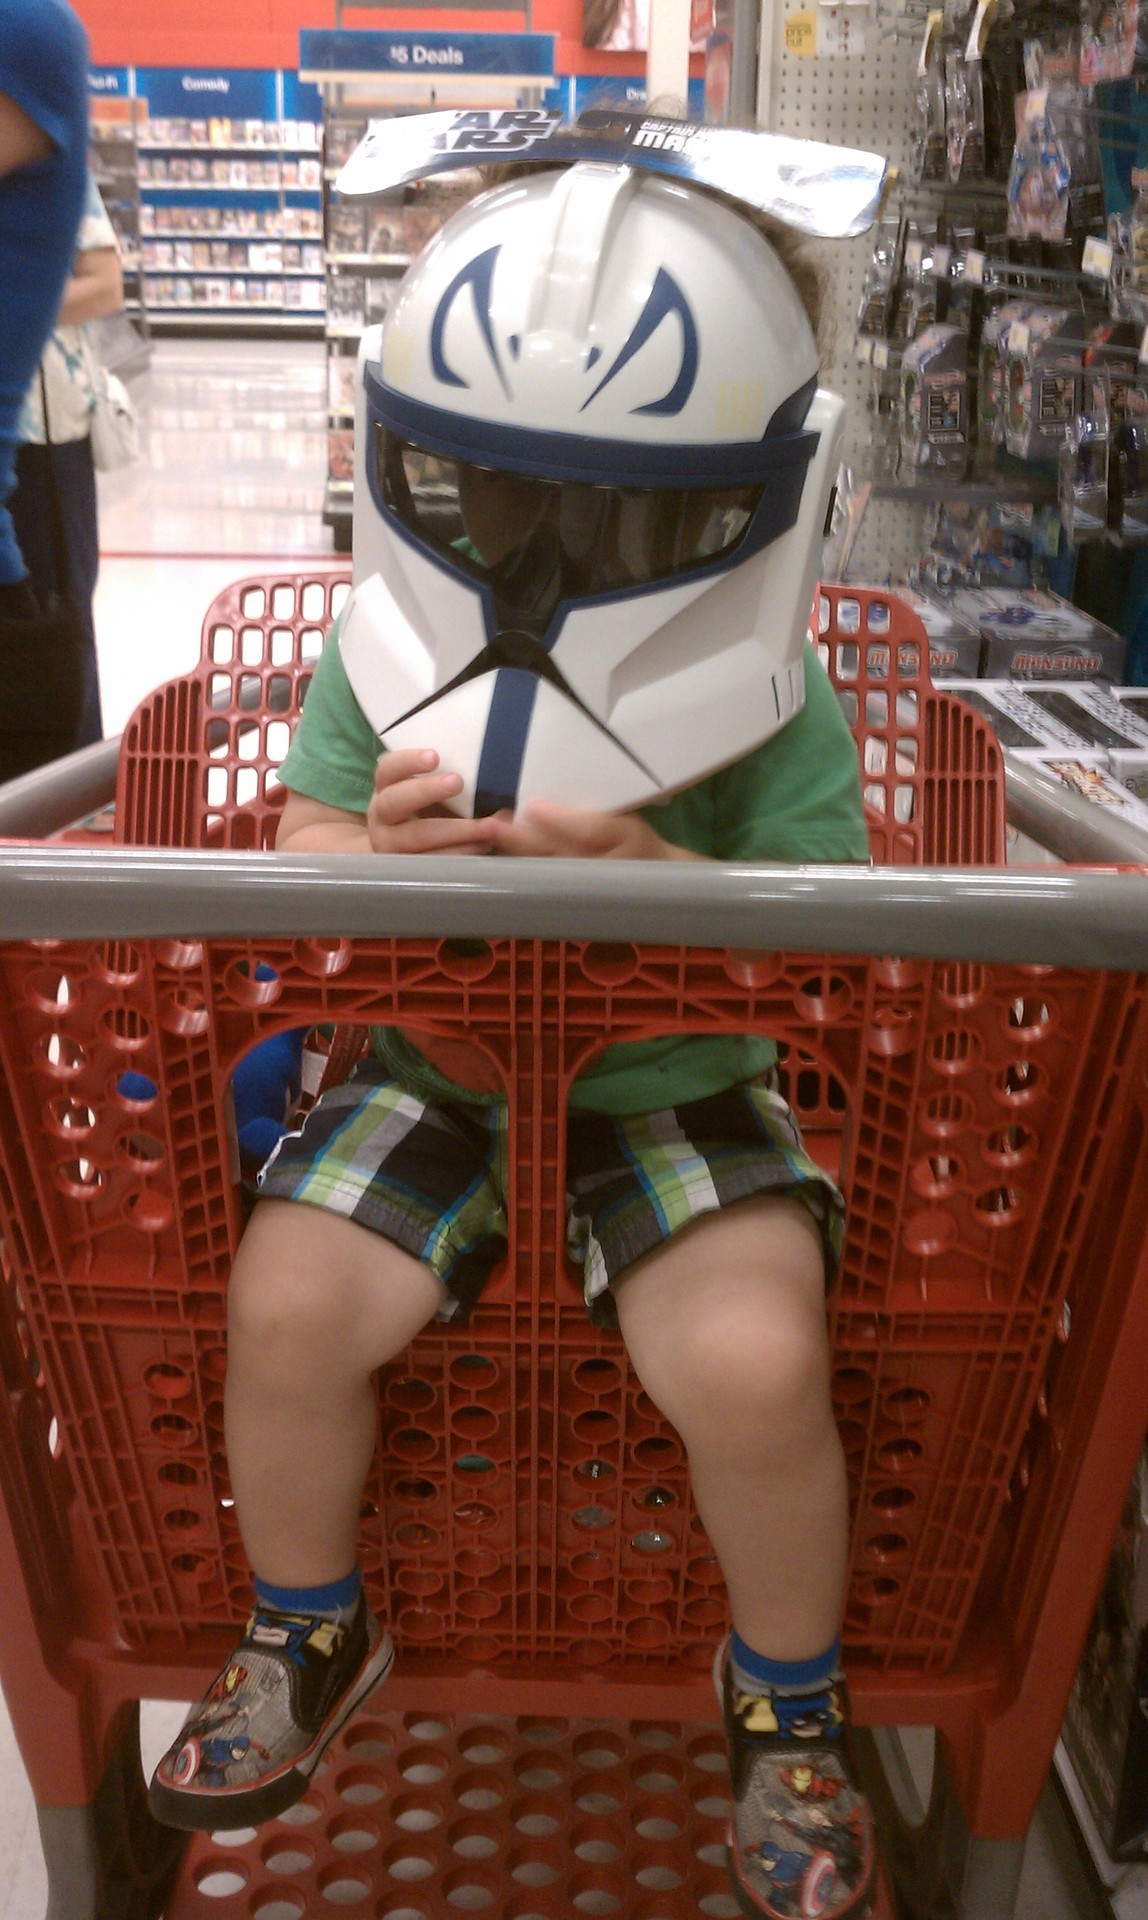 My nephew as Darth Vader.